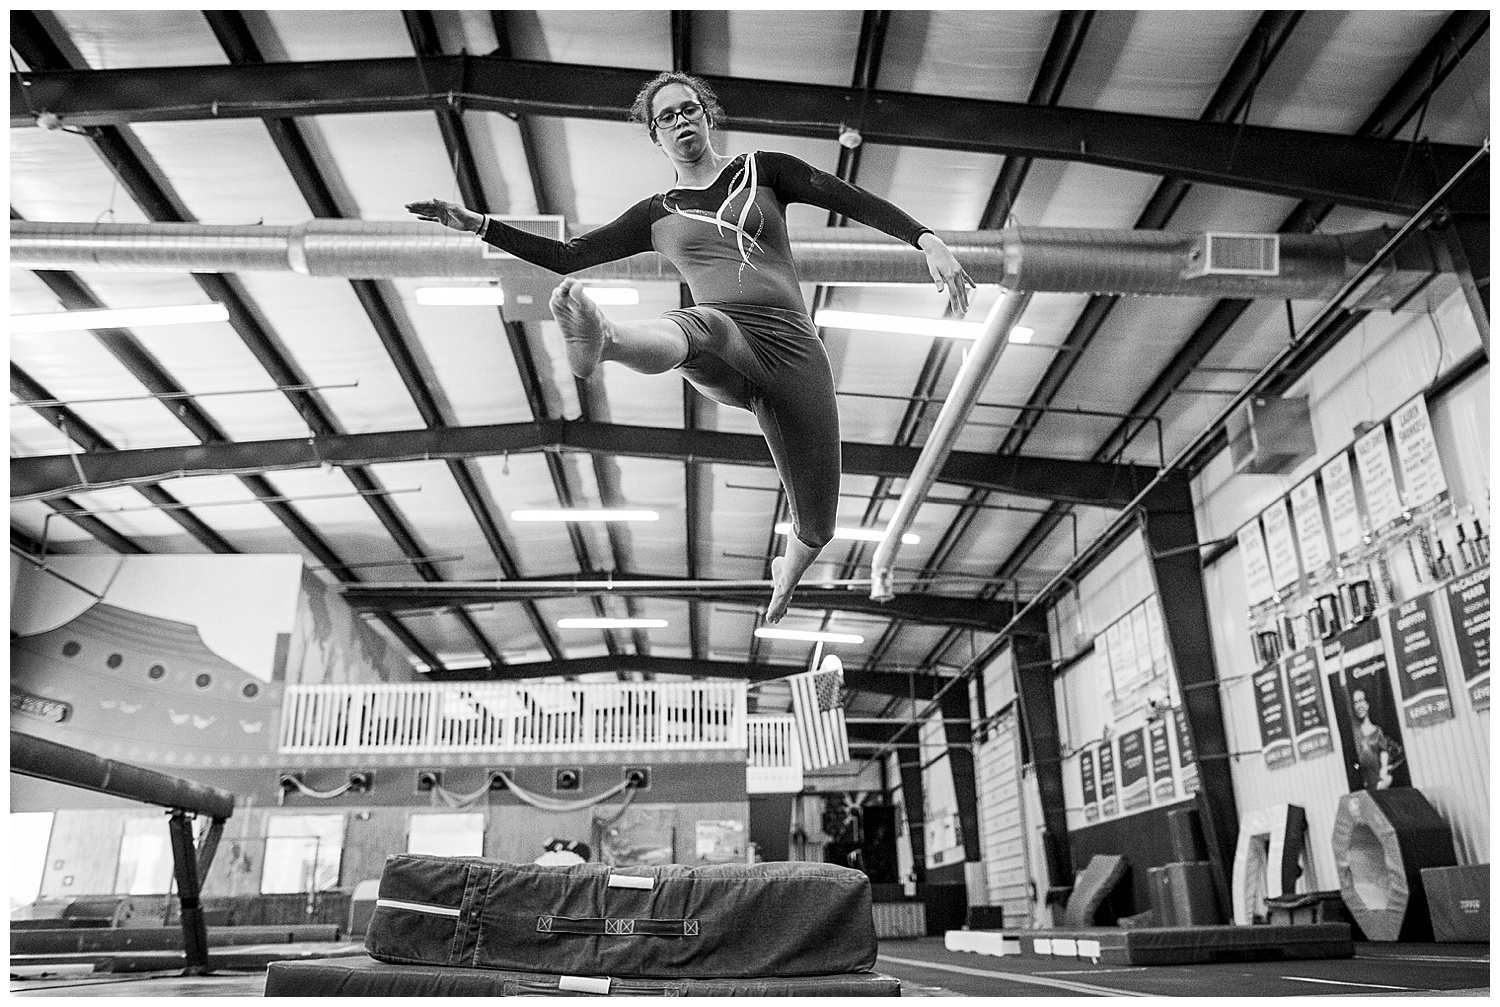 special olympics gymnast leaps through the air